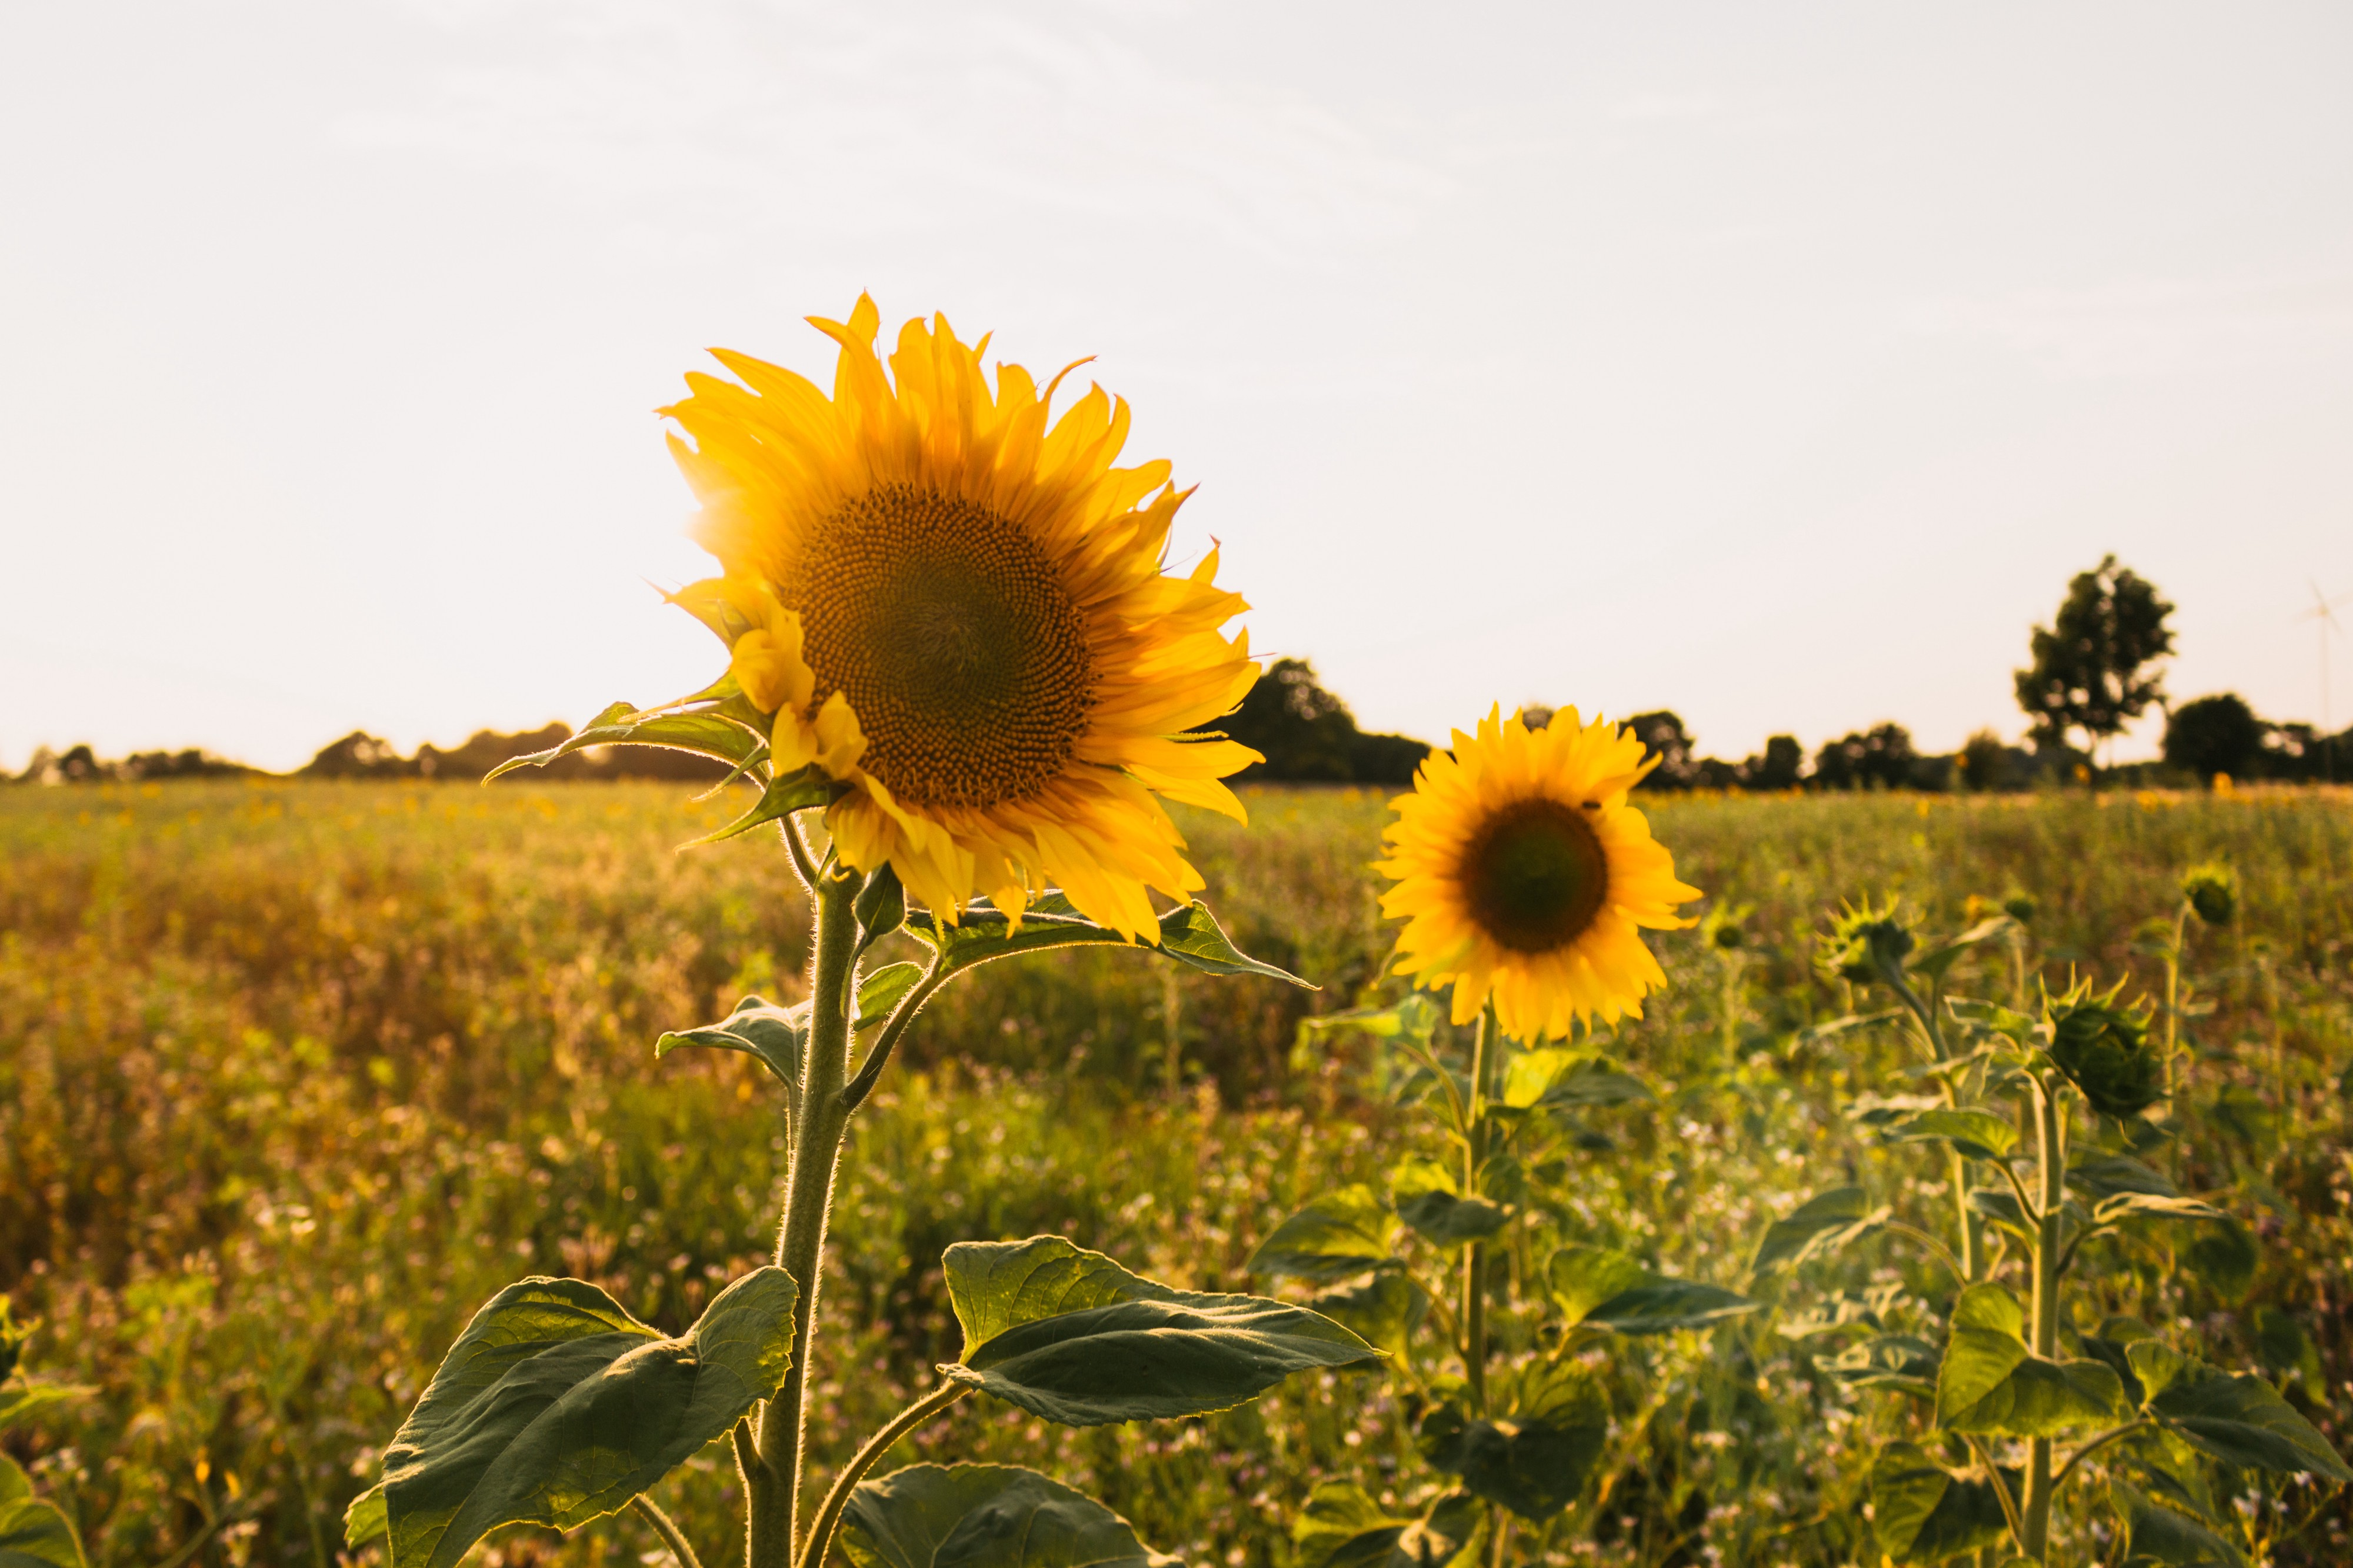 image of two sunflowers in a grassy field